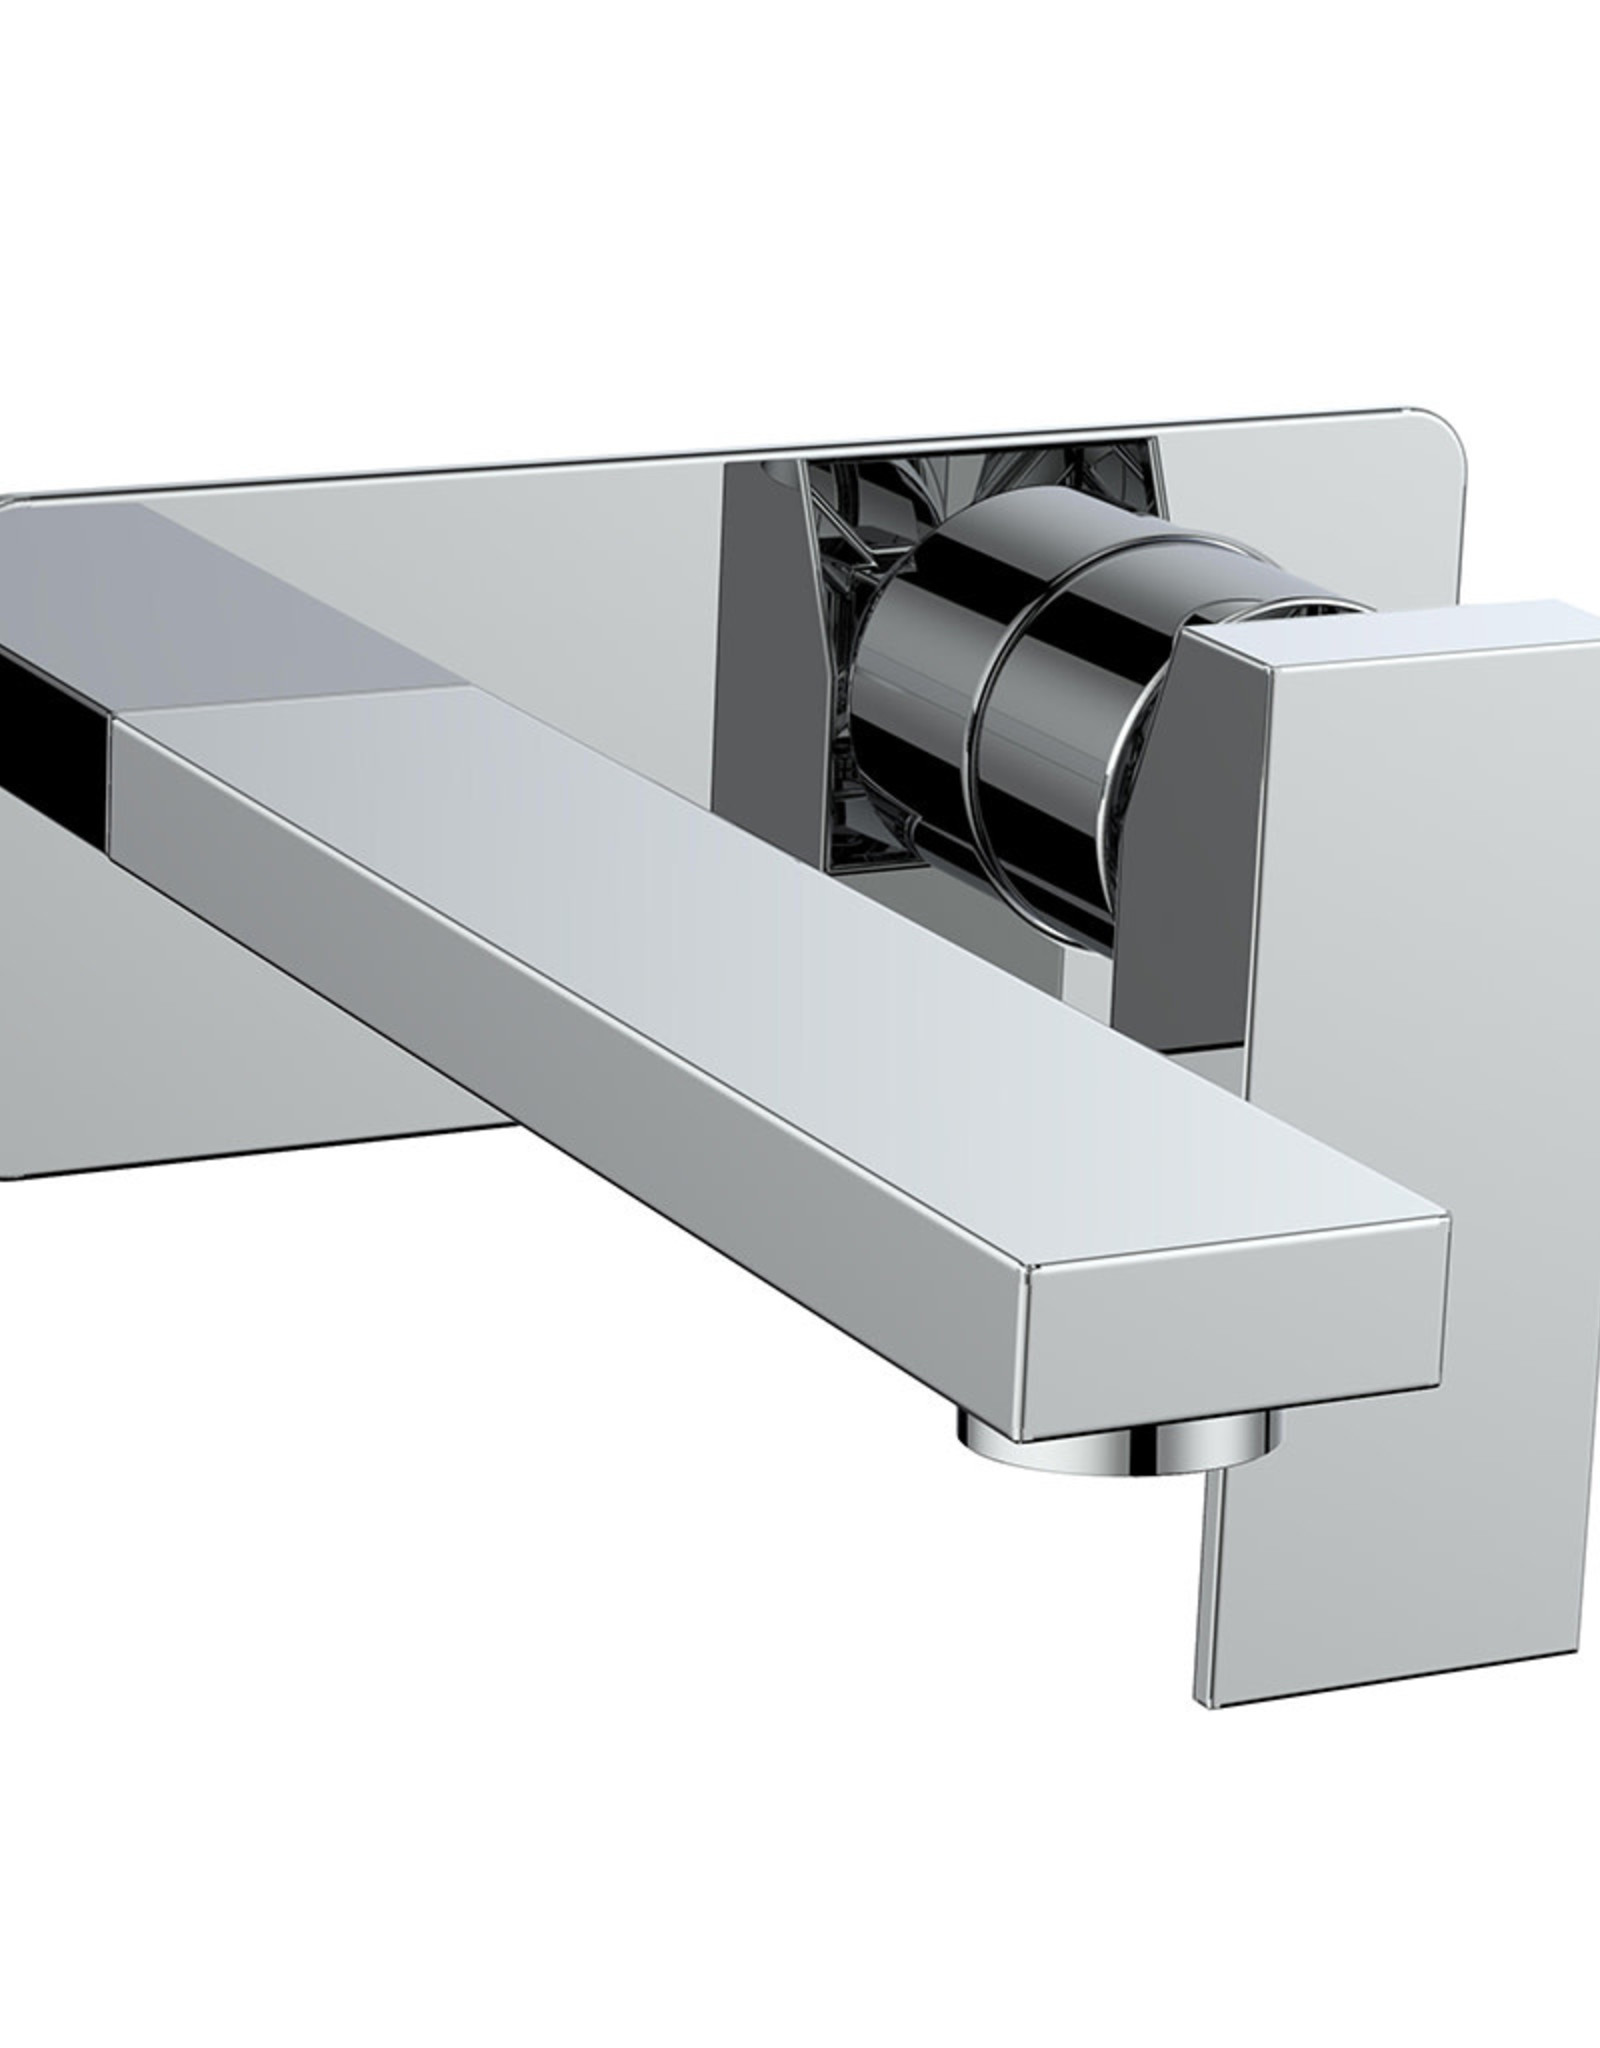 Vogt Kapfenberg- Wall Mounted Lav Faucet W/ Backplate- Chrome